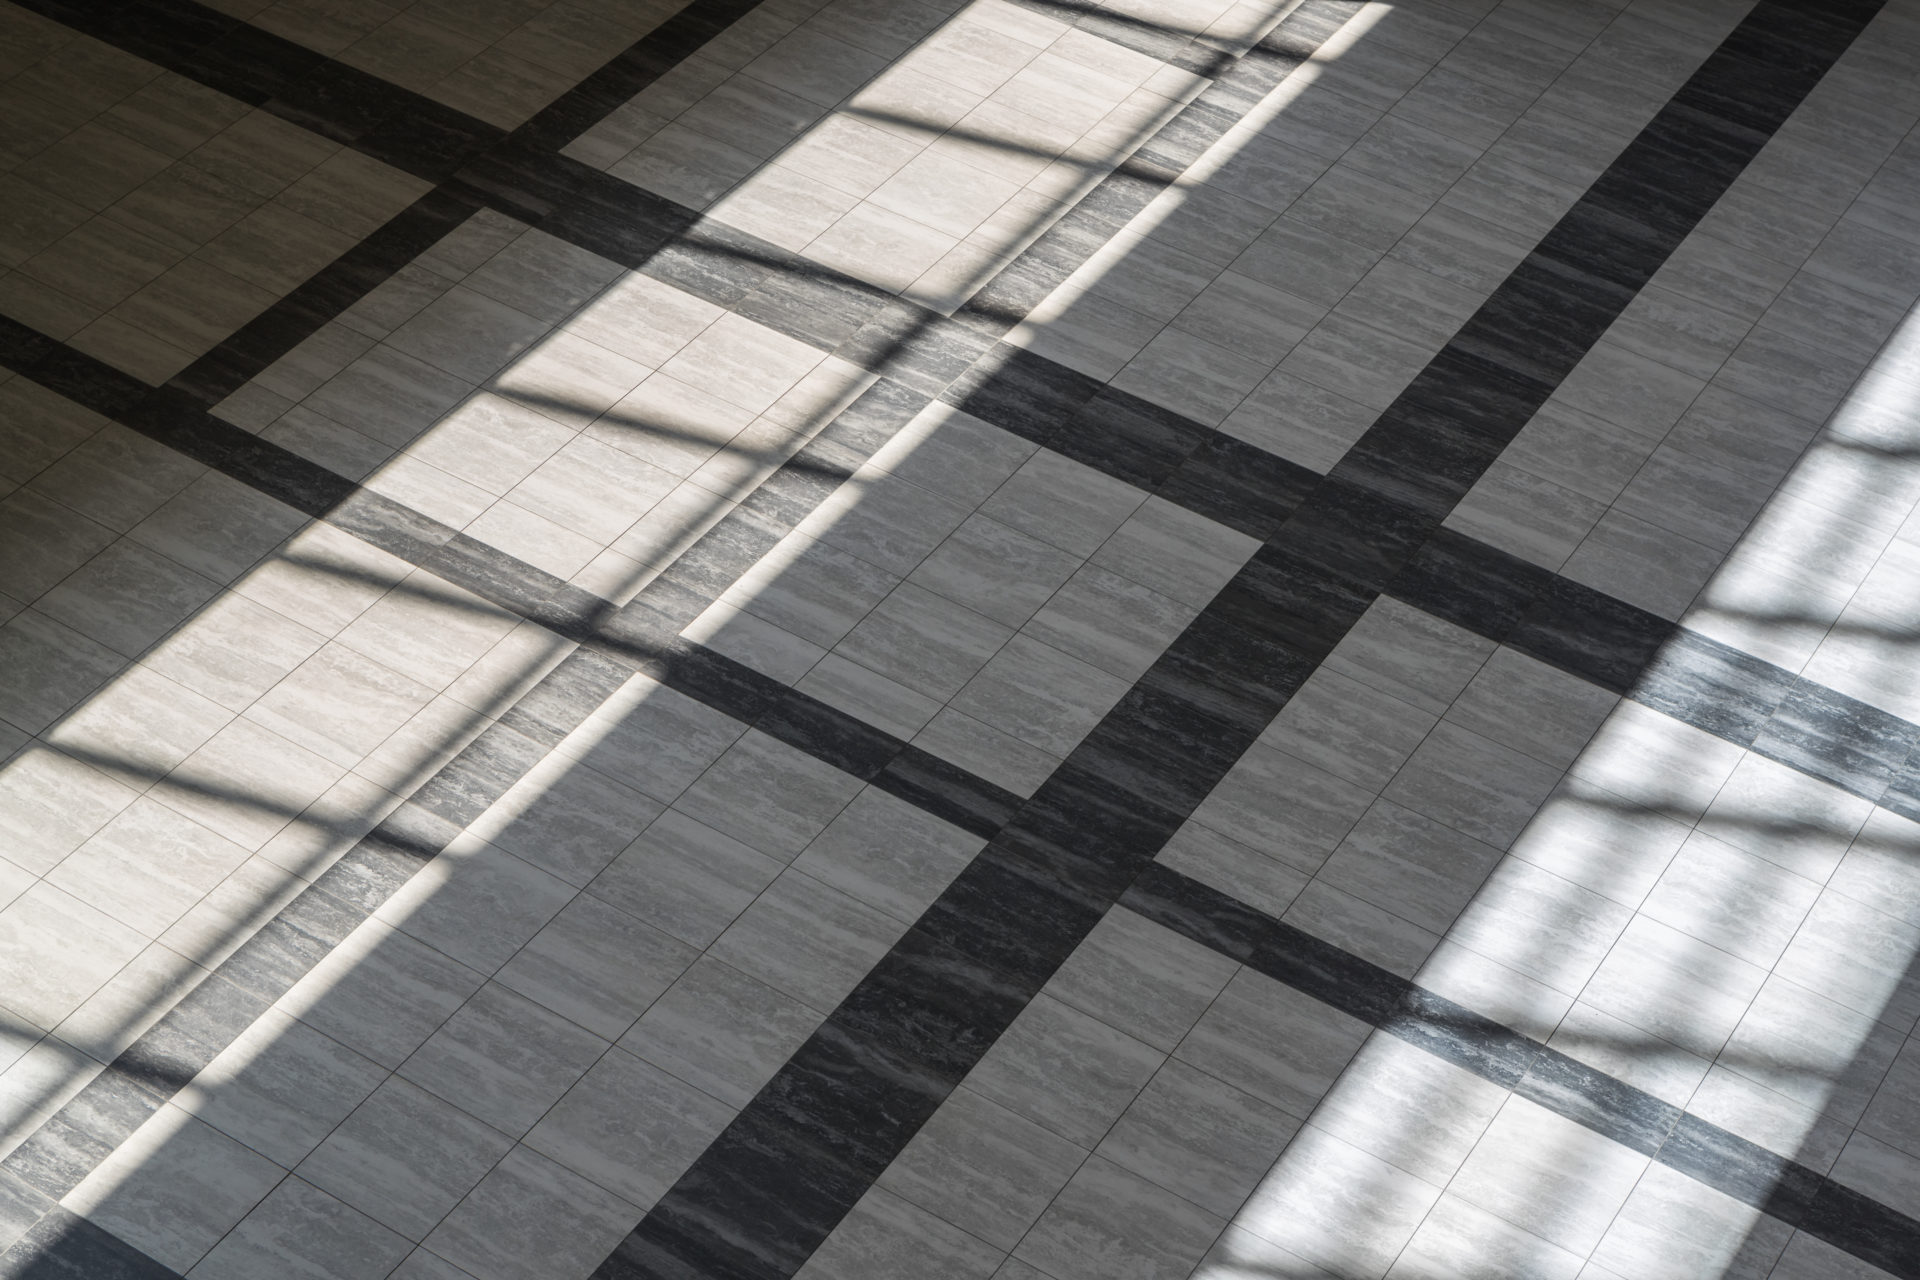 Flatlay image of tile in lobby at Hilton